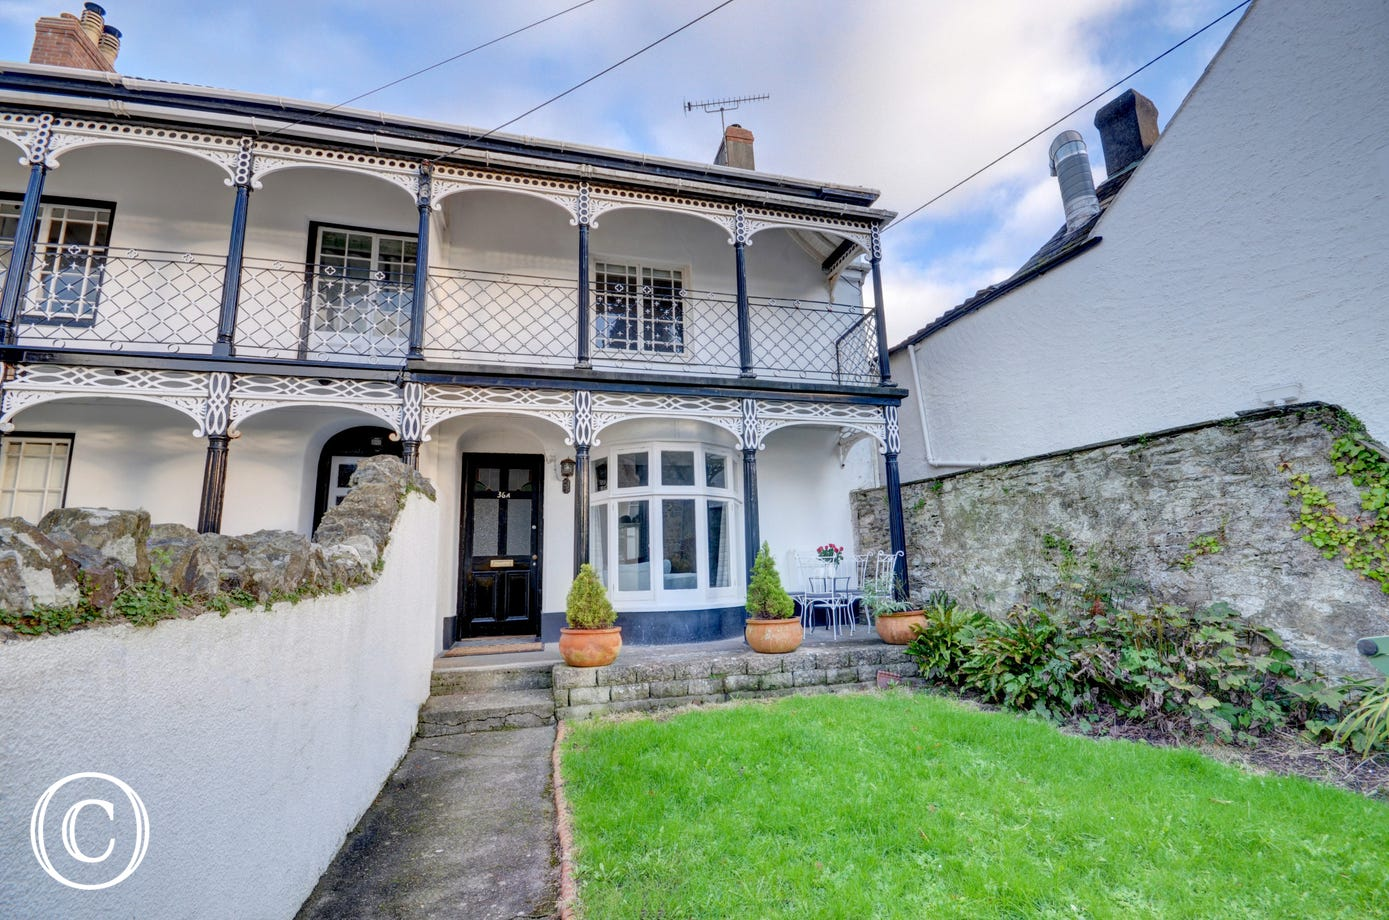 Gladstone is an attractive Grade II colonial style character house located in the historic part of Braunton